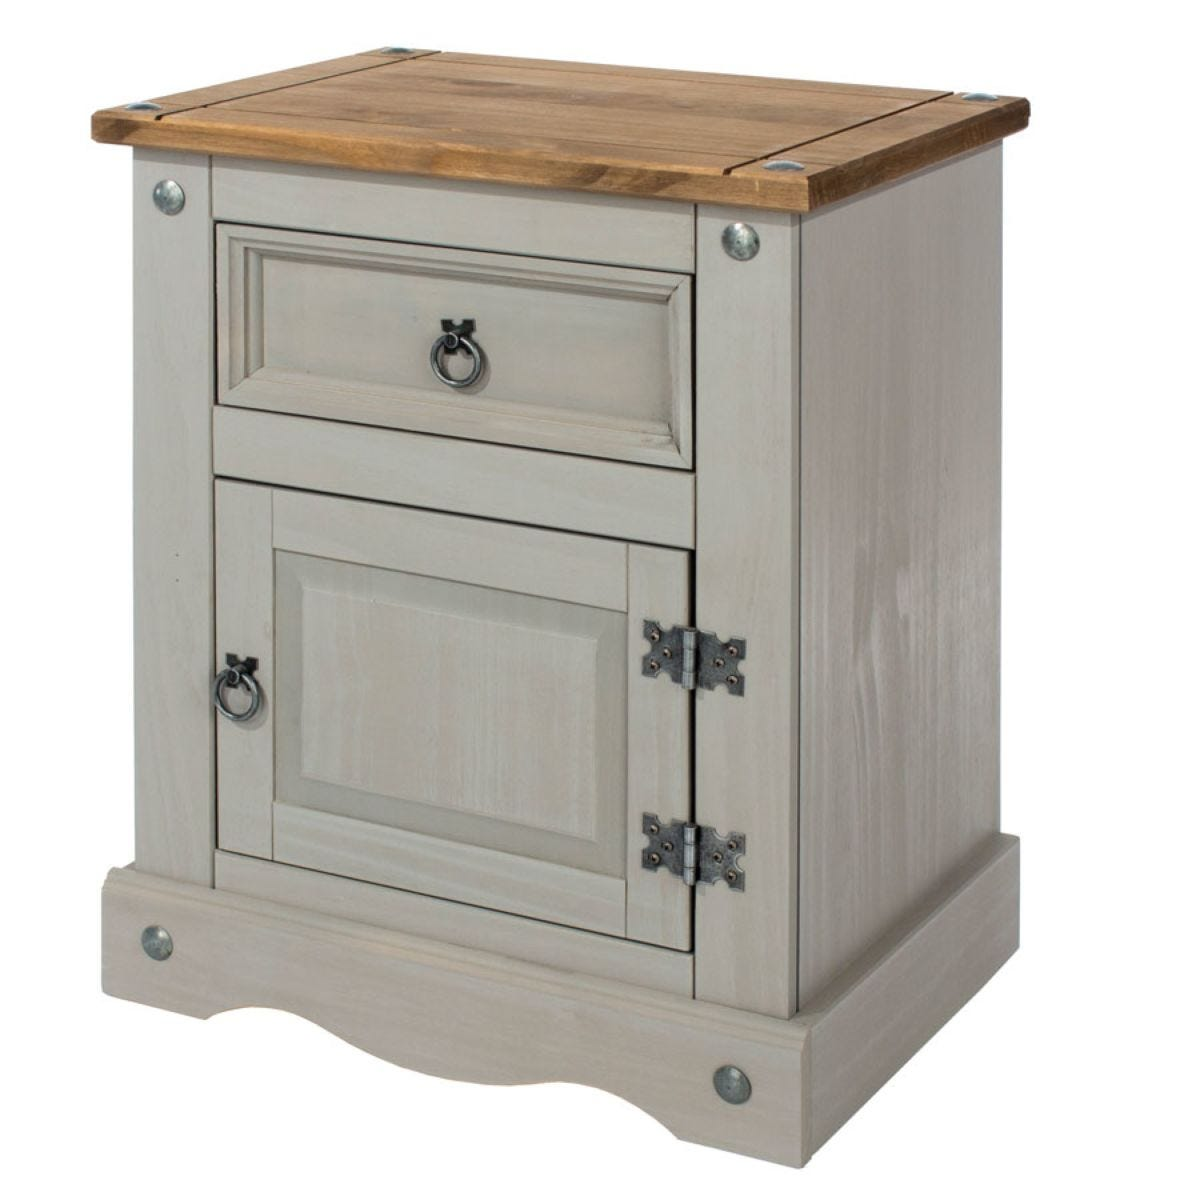 Halea 1-Drawer, 1-Door Bedside Cabinet - Grey